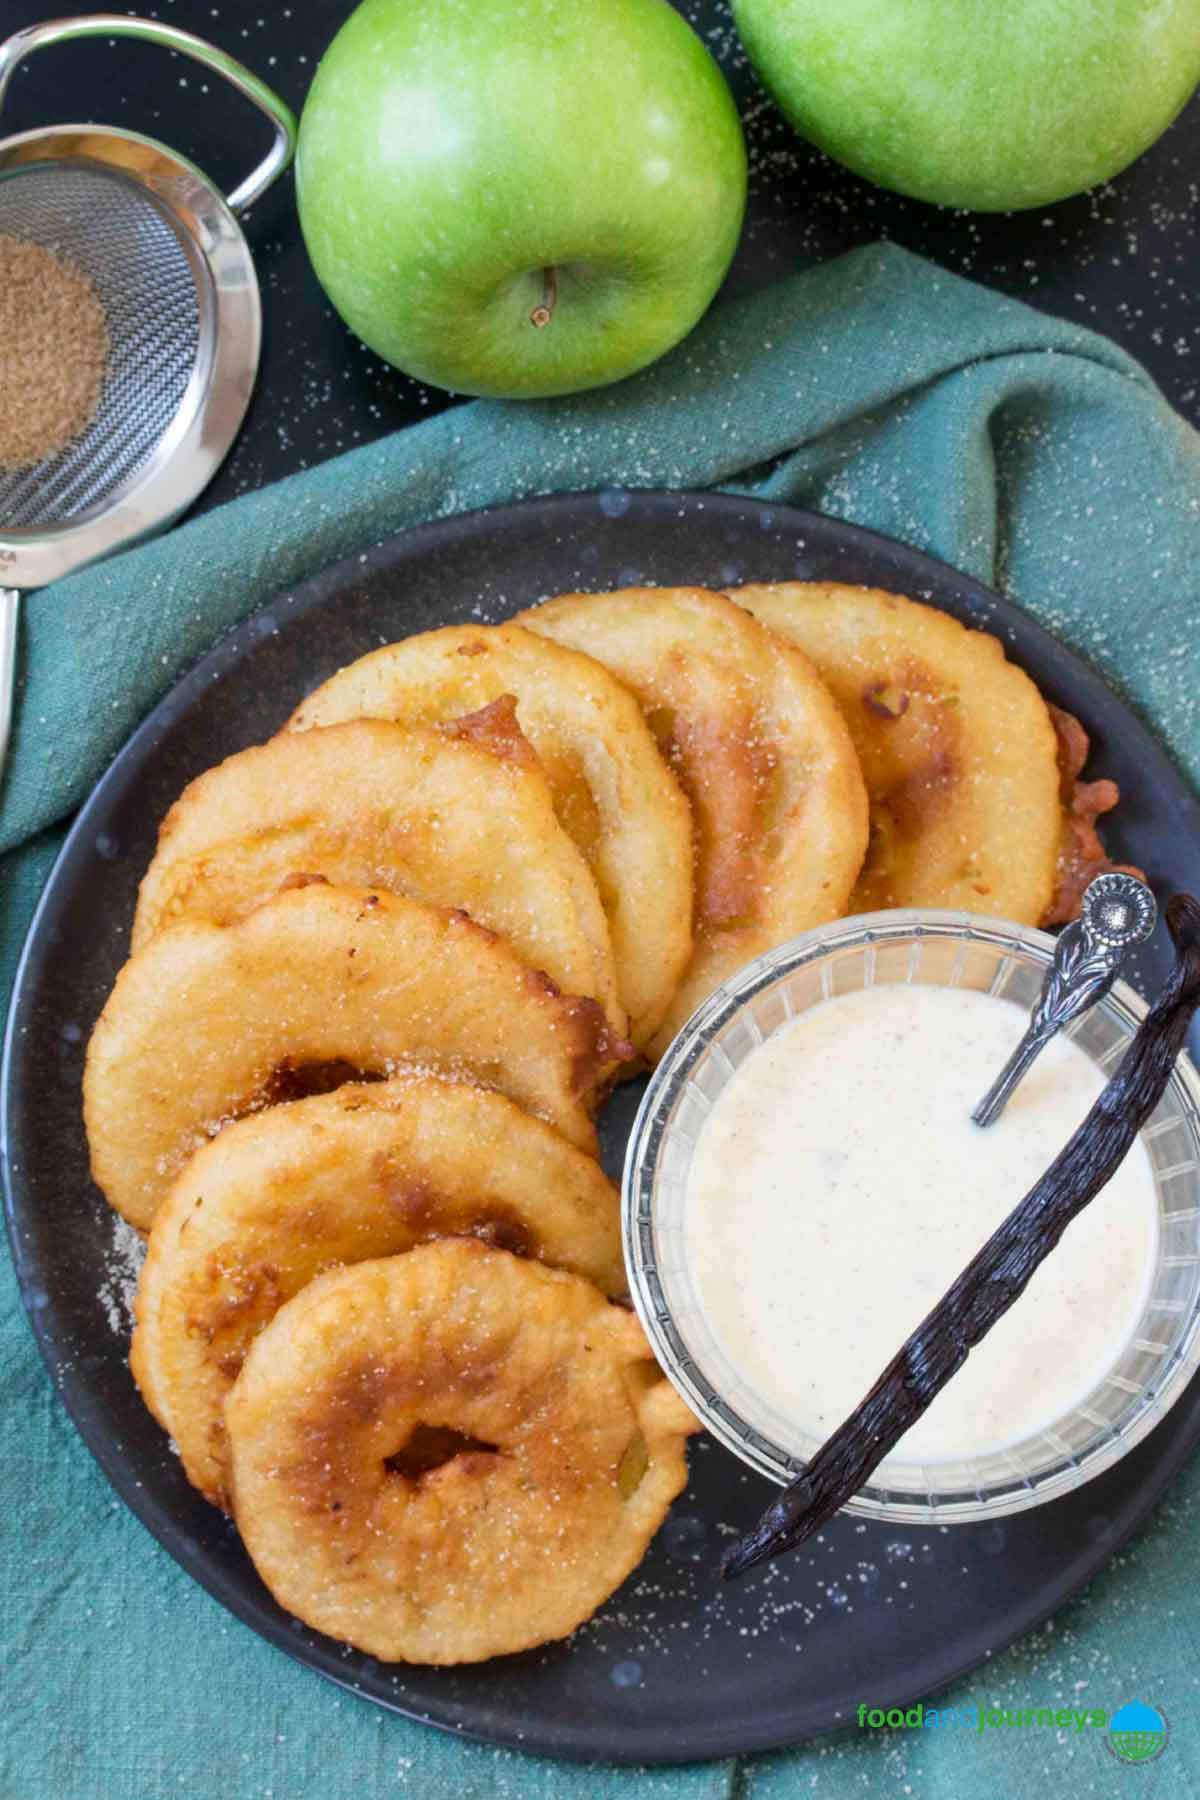 An overhead shot of a plate full of fried apples, served with vanilla sauce.